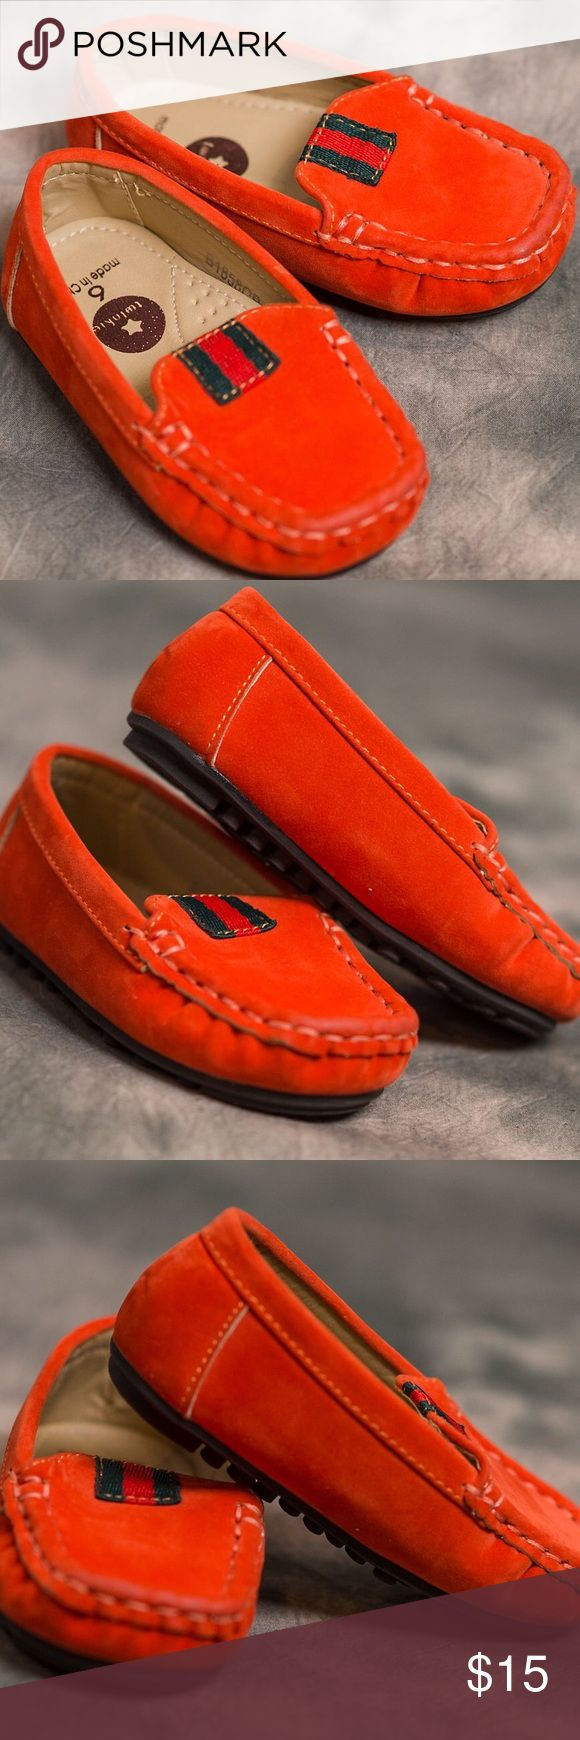 Twinkie toddler boys loafers Twinkie orange slipping loafer suede.  These are absolutely adorable and so comfy. Worn once.  Amazing condition Twinkie Shoes Dress Shoes